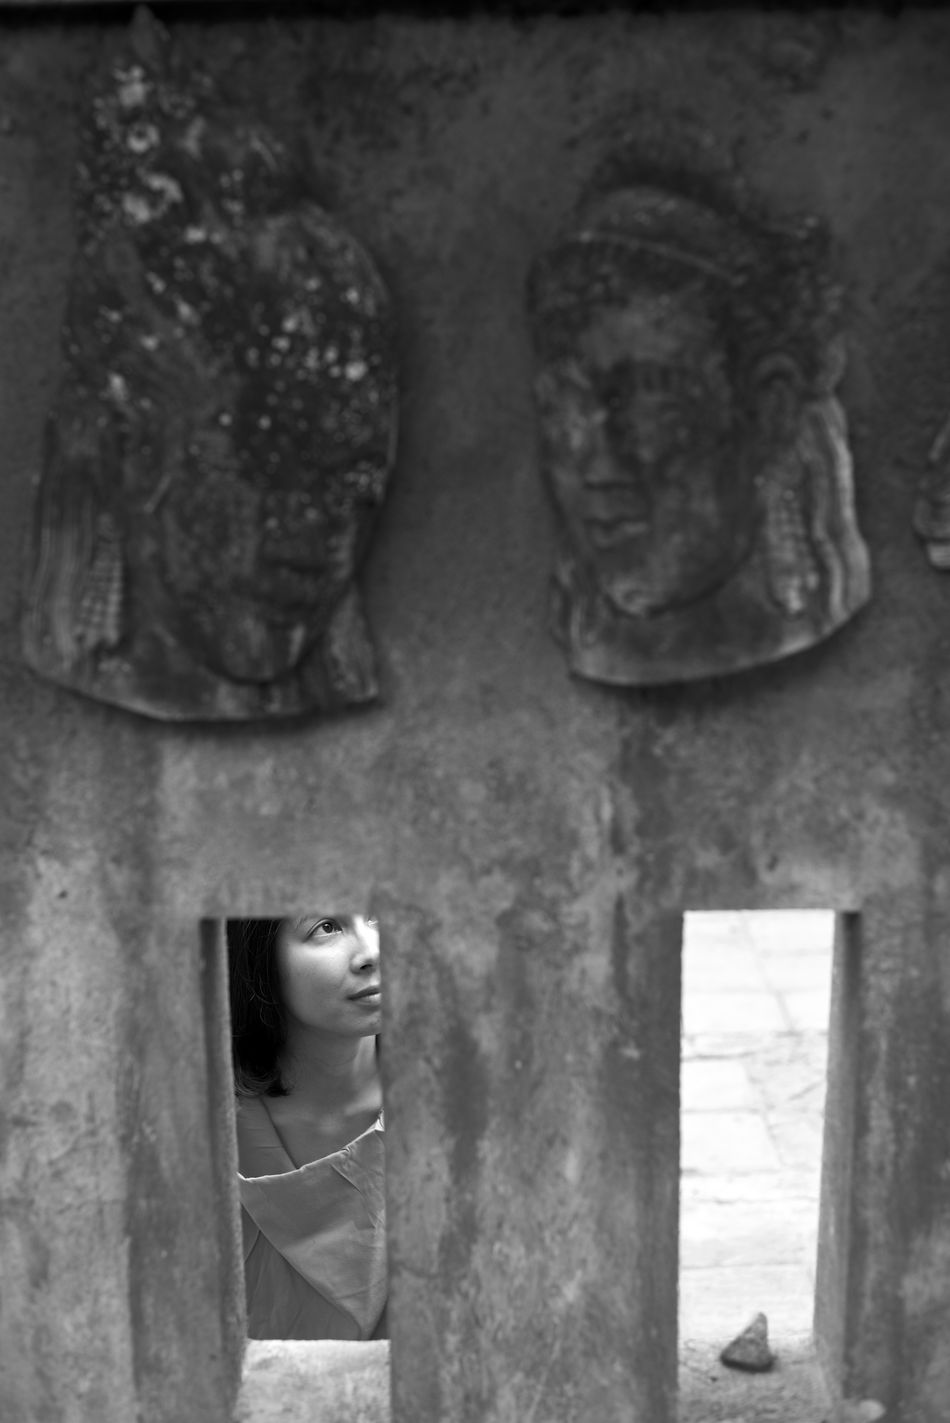 Asian  Bali Bali, Indonesia Black And White Portrait Fine Art Photography Framed INDONESIA Indonesia_photography Natural Light Portrait Nikonphotography Portrait Of A Woman Sculpture Ubud Ubud, Bali Water Woman Of EyeEm Woman Portrait Woman Who Inspire You